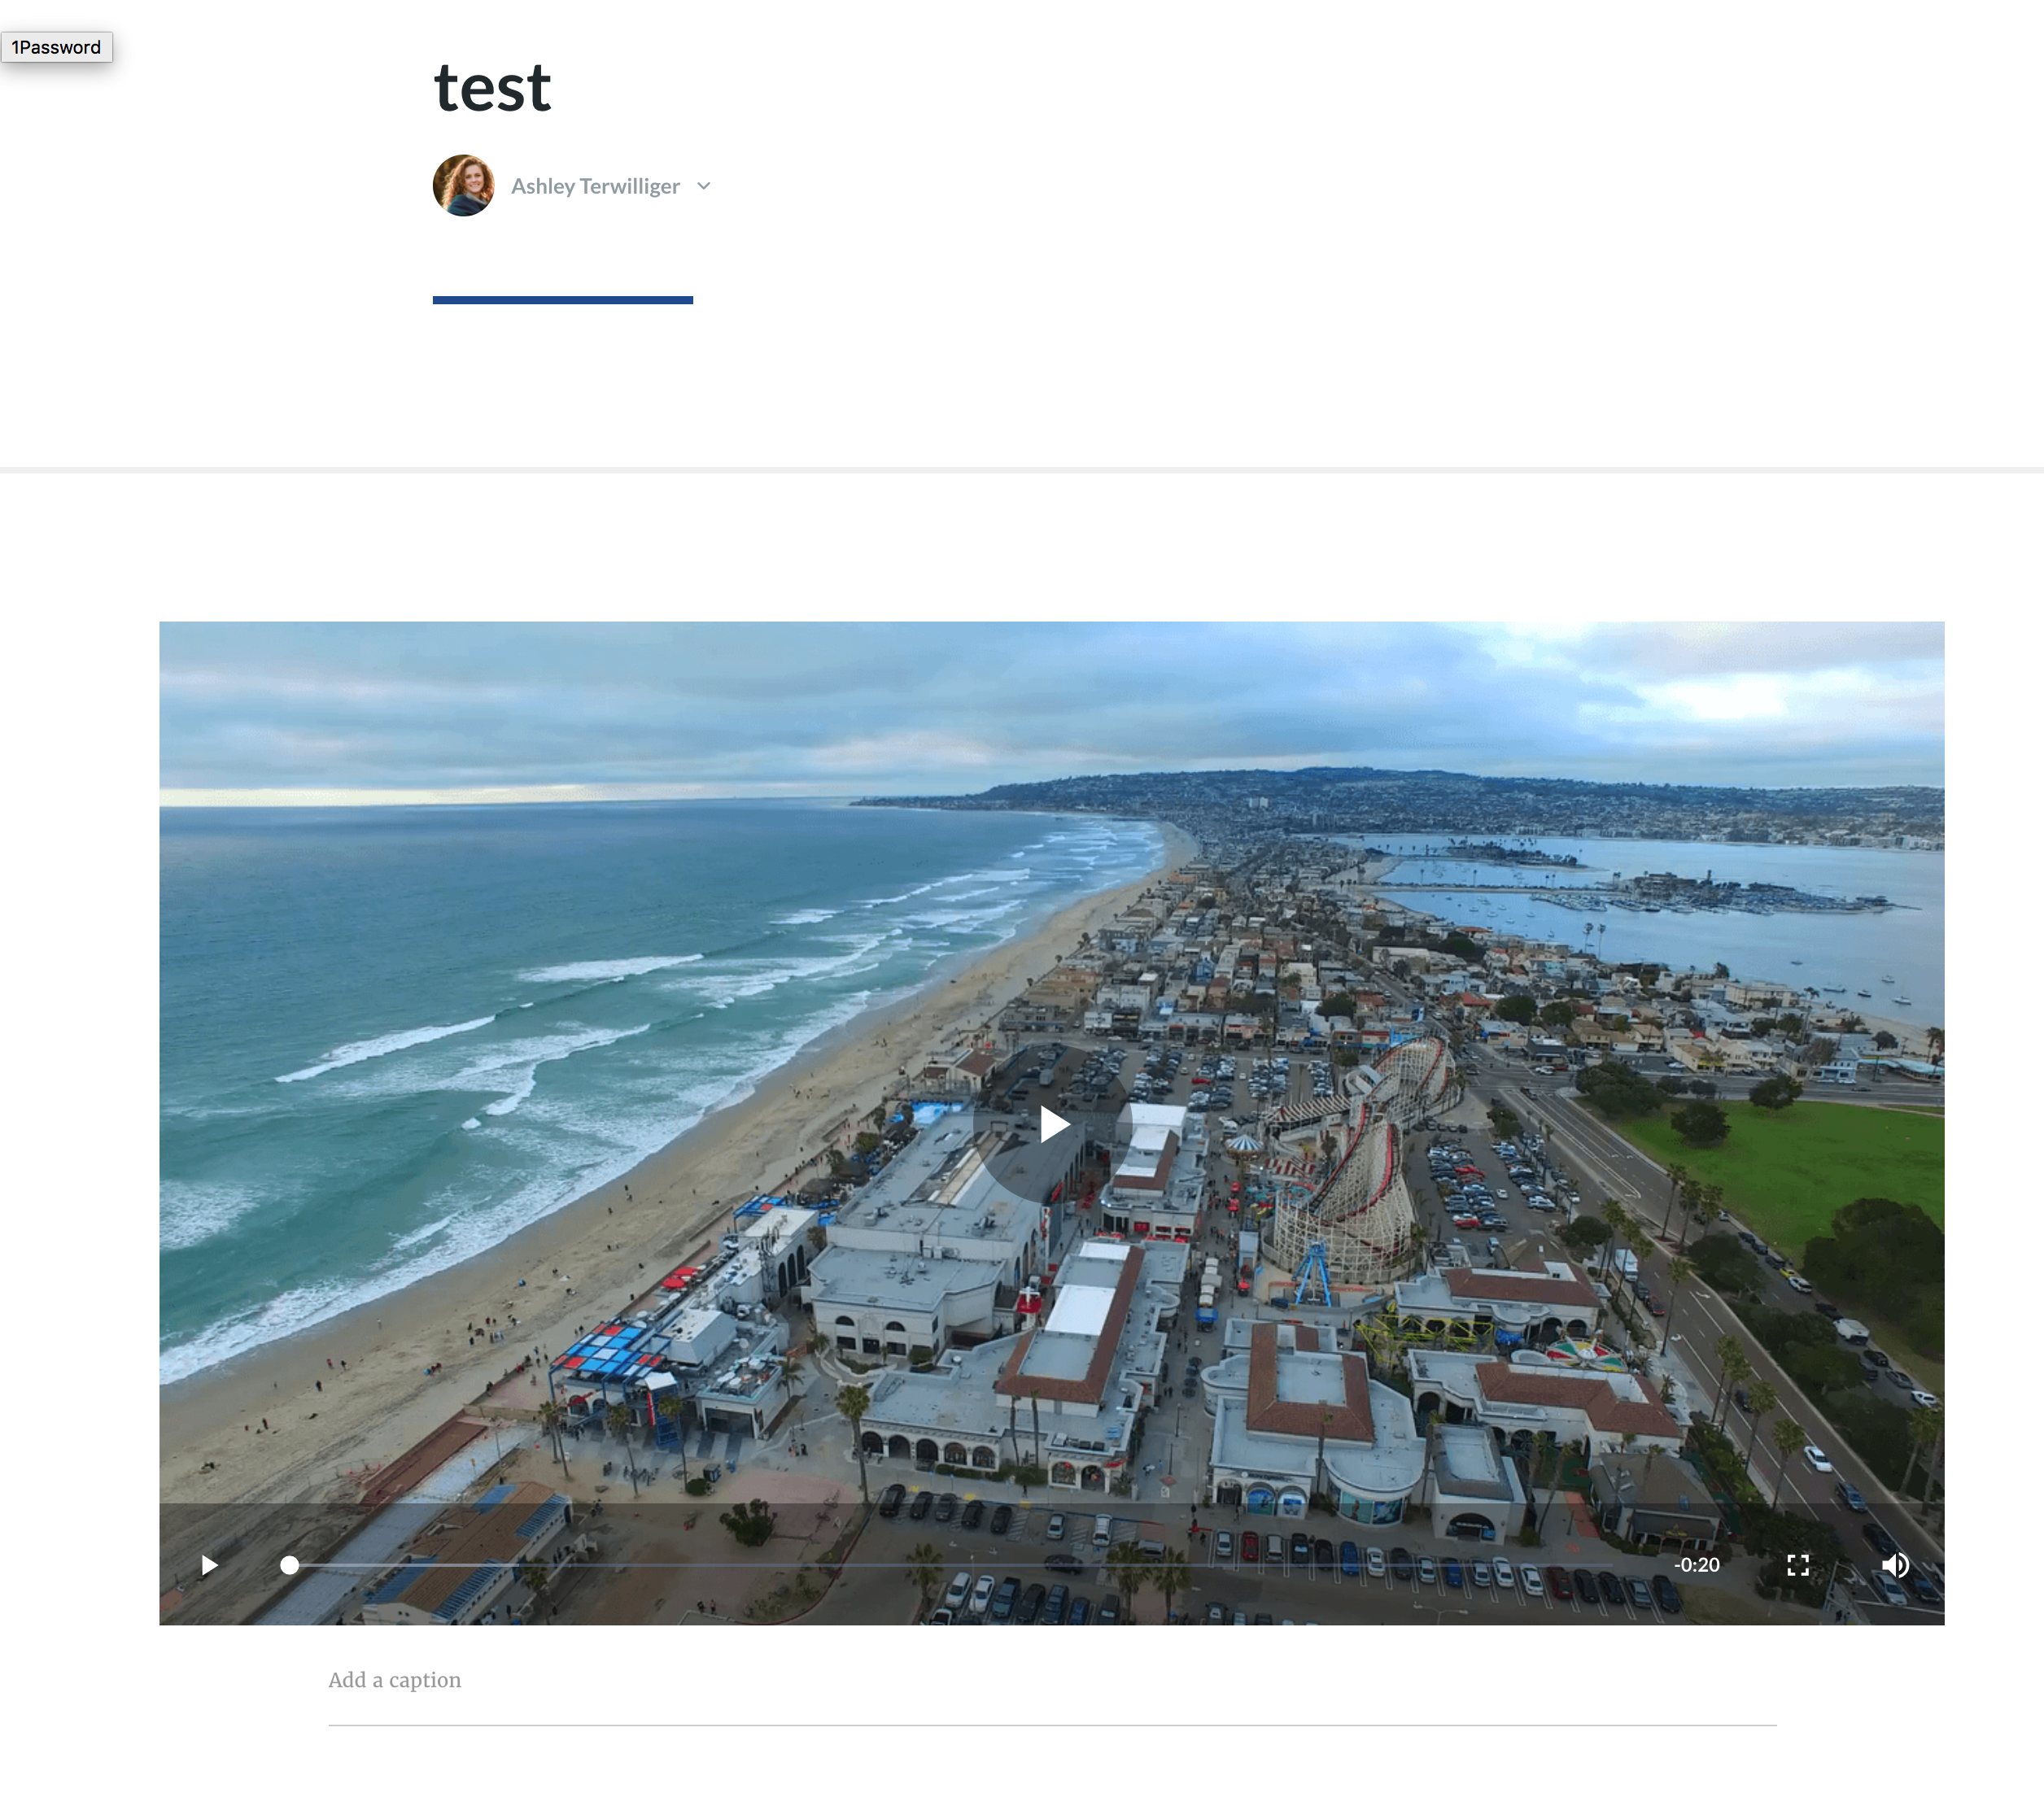 Possible Thumbnail Frames for Embedded Videos in Rise - Rise ...